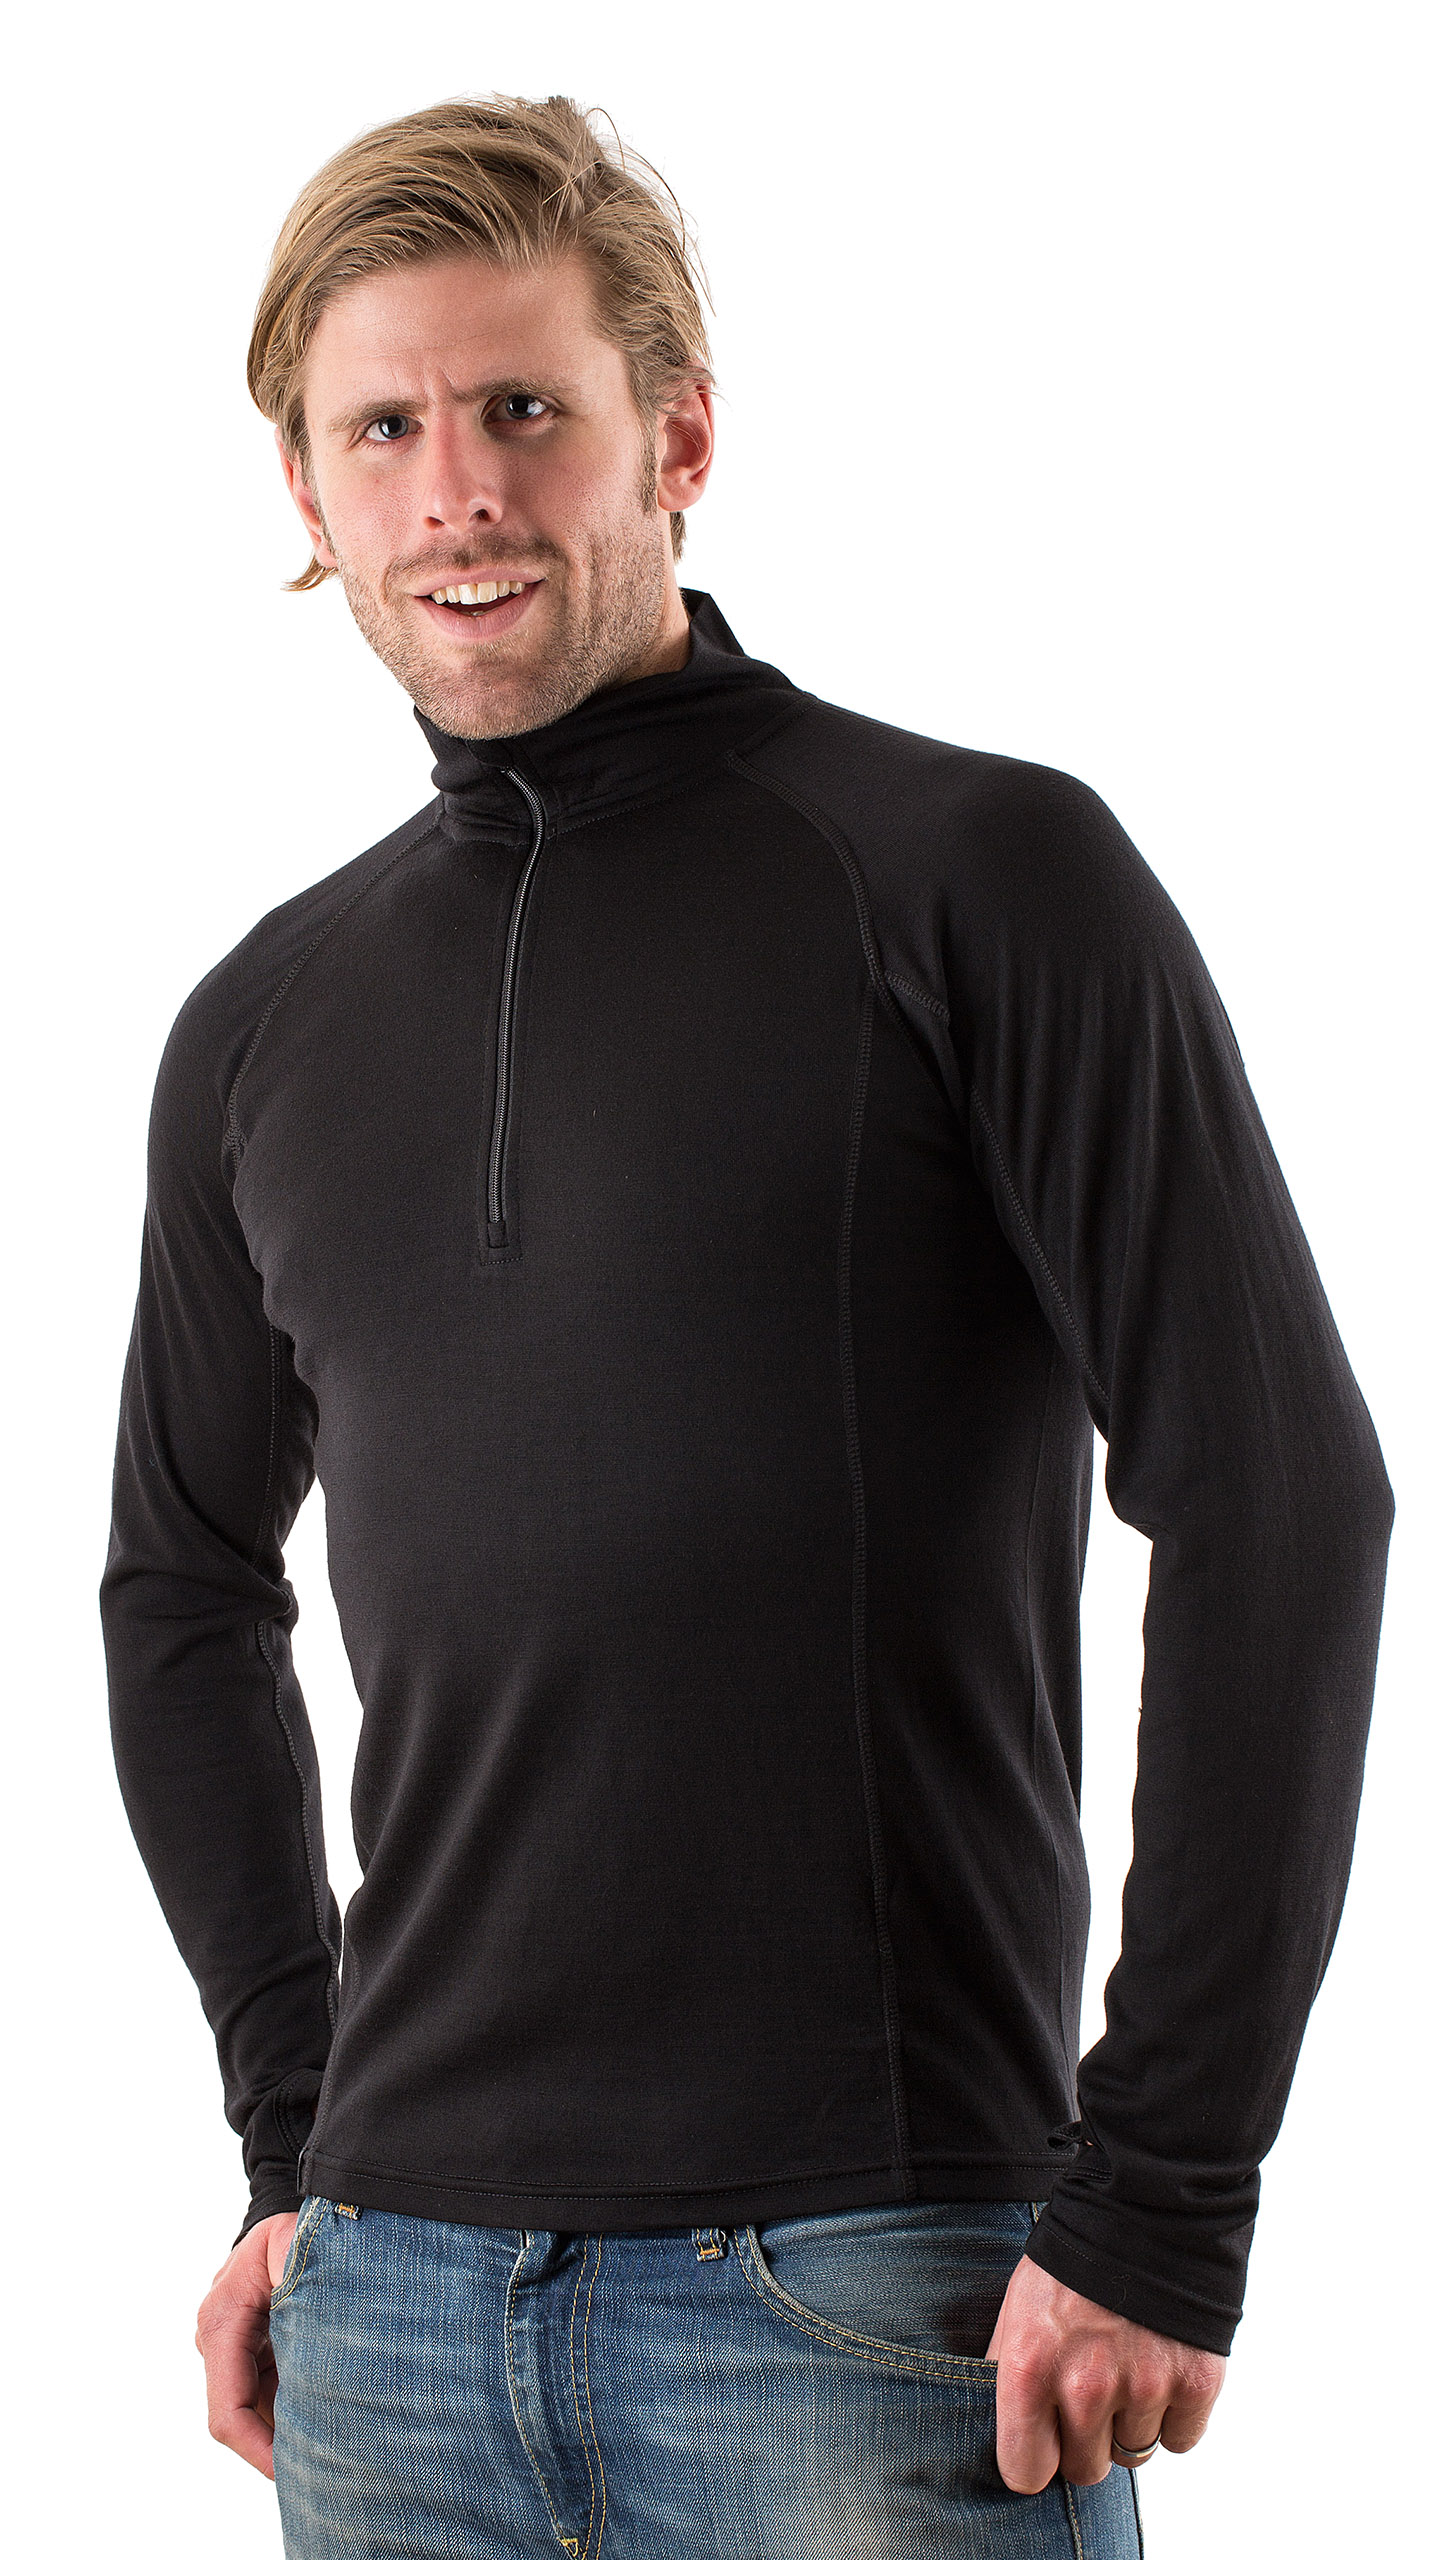 base layer tops with thumb loops jpg 1500x1000